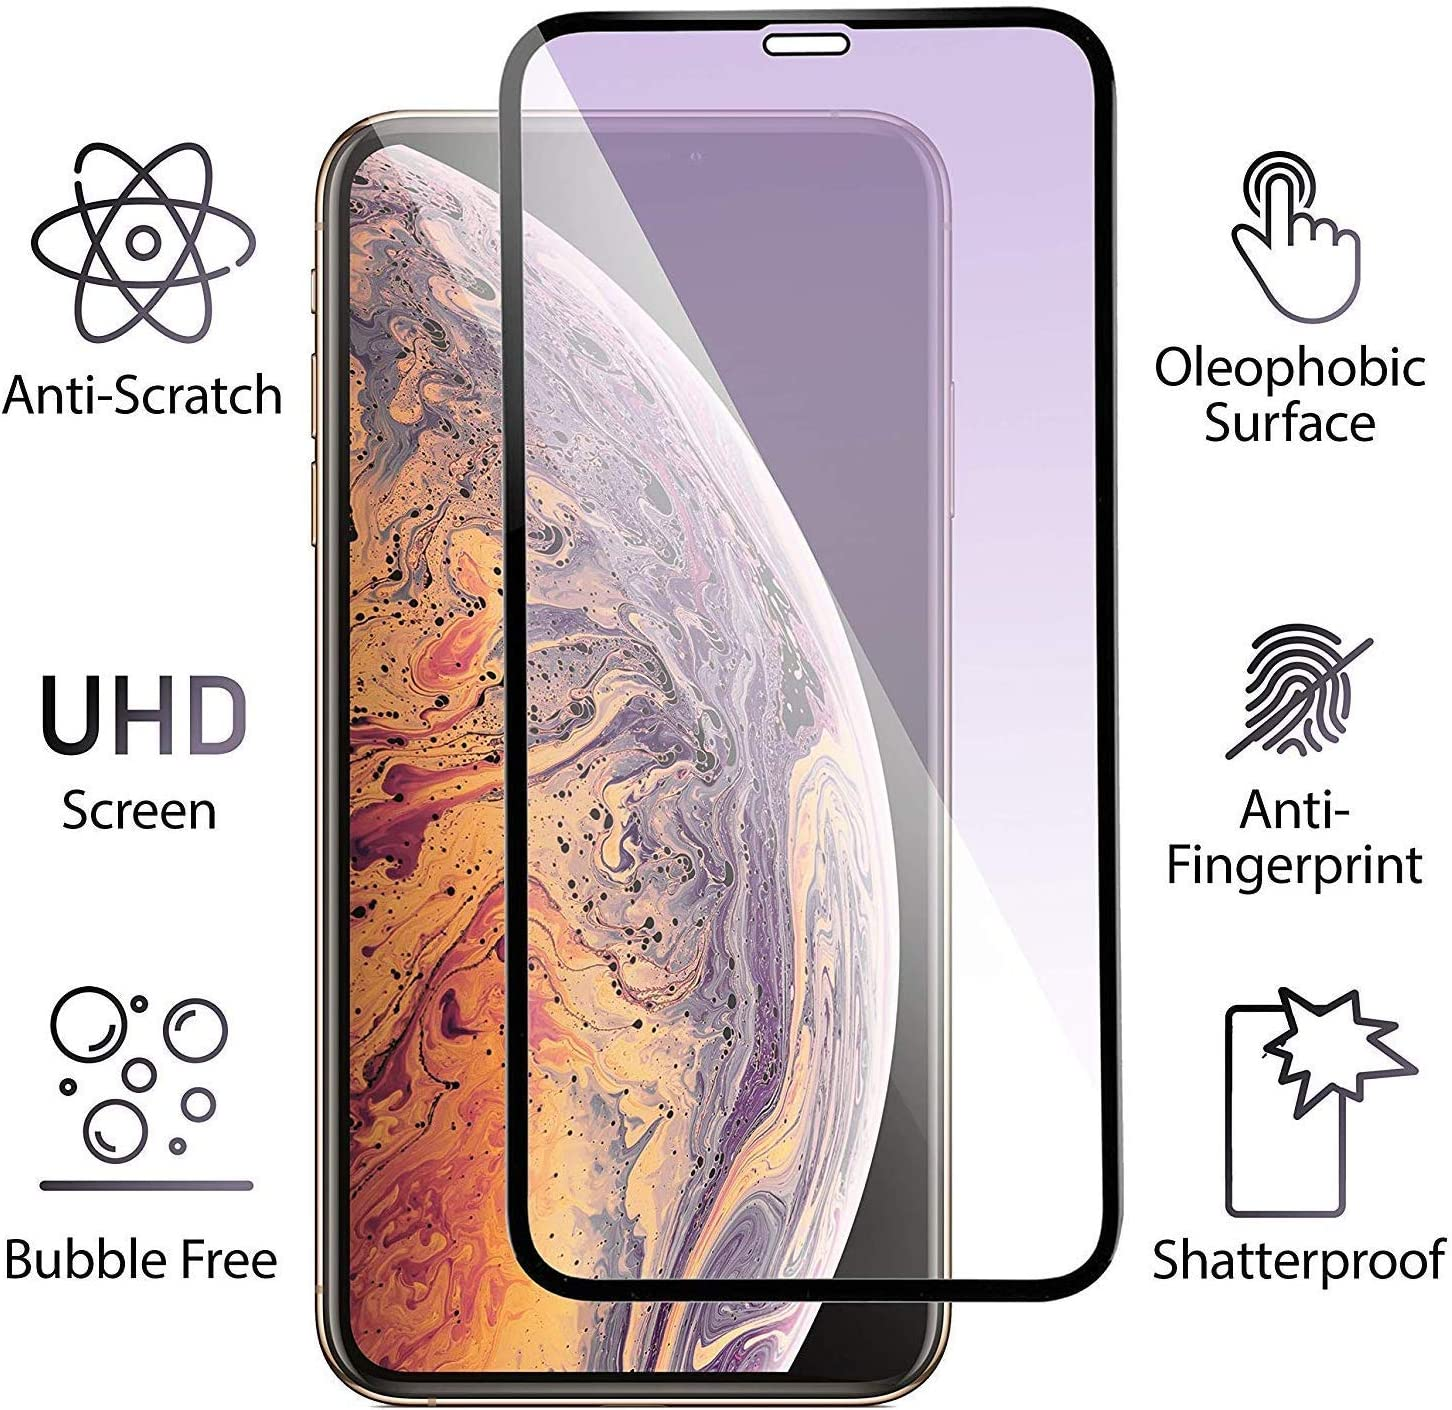 LS676 0.26mm 9H Surface Hardness Explosion-Proof Tempered Glass Screen Film ZYS Screen Protector 100 PCS for LG Tribute HD